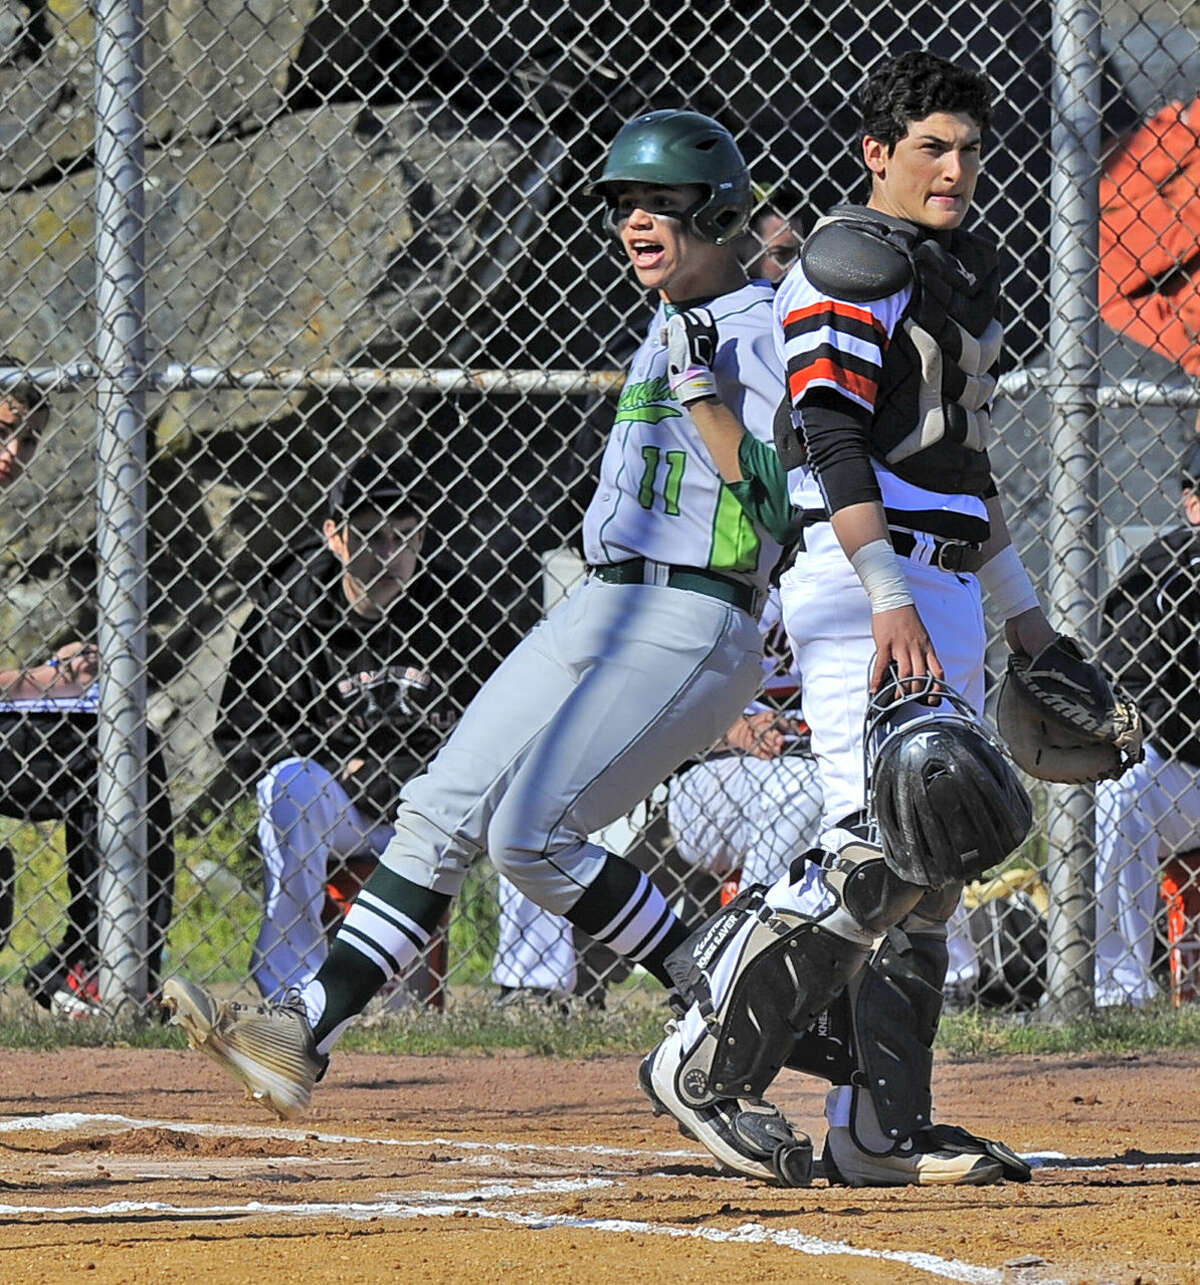 Stamford catcher Nico Kydes reacts as Norwalk Moe Ortiz-Echevarria celebrates scoring in the first inning of a FCIAC boys baseball game at Stamford High School on April 15, 2016. Norwalk defeated Stamford 8-7.